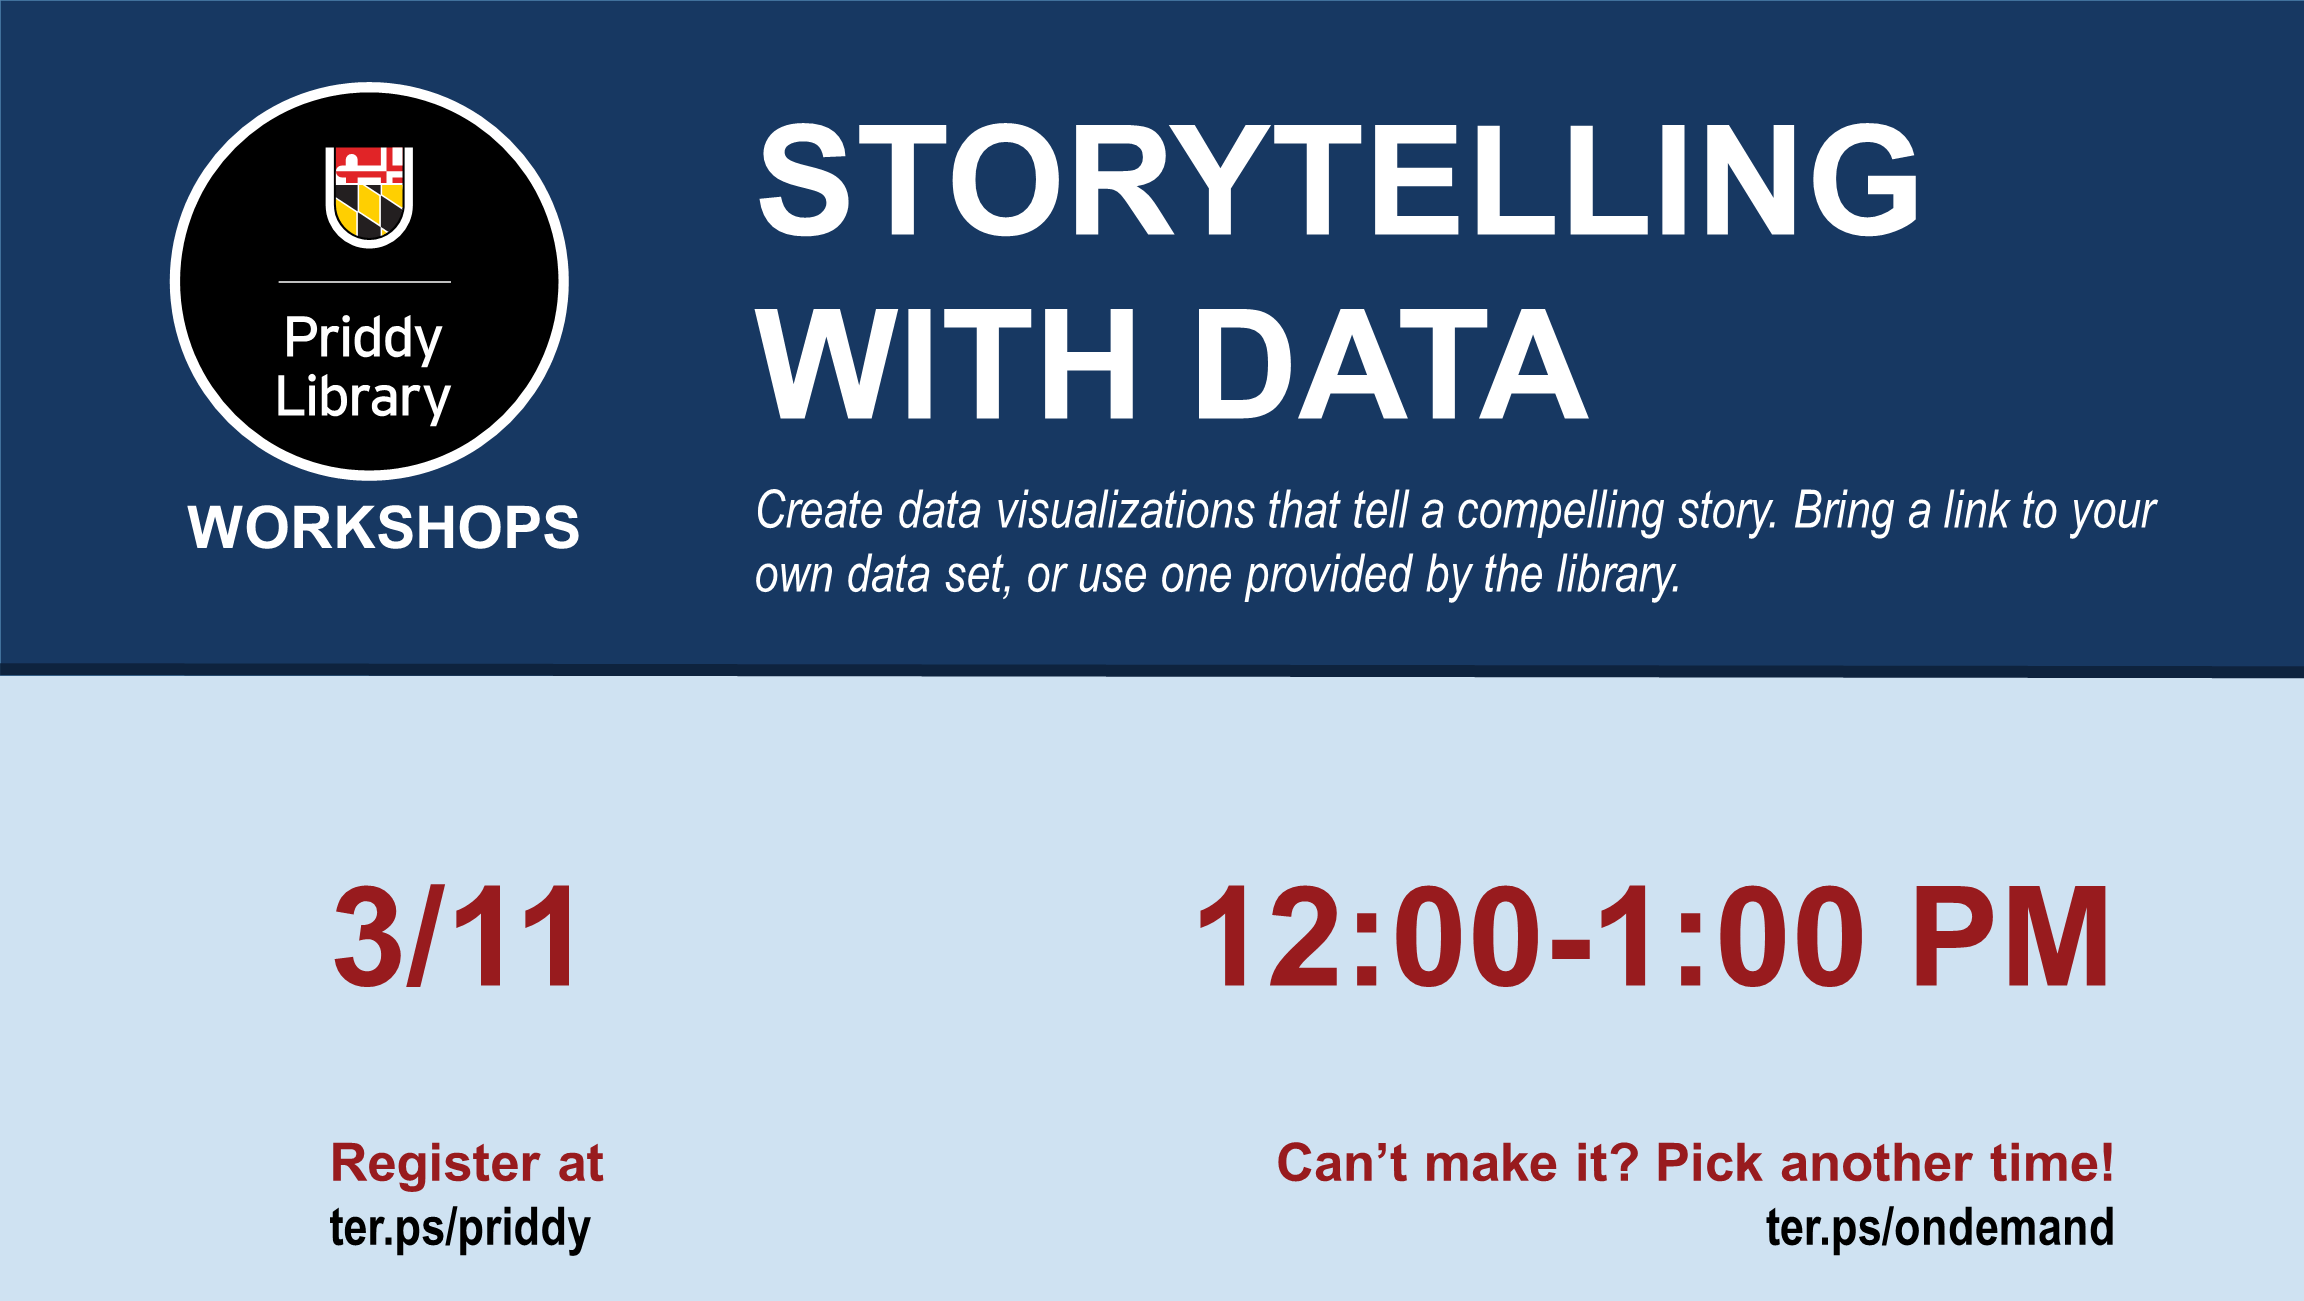 Storytelling with Data flyer